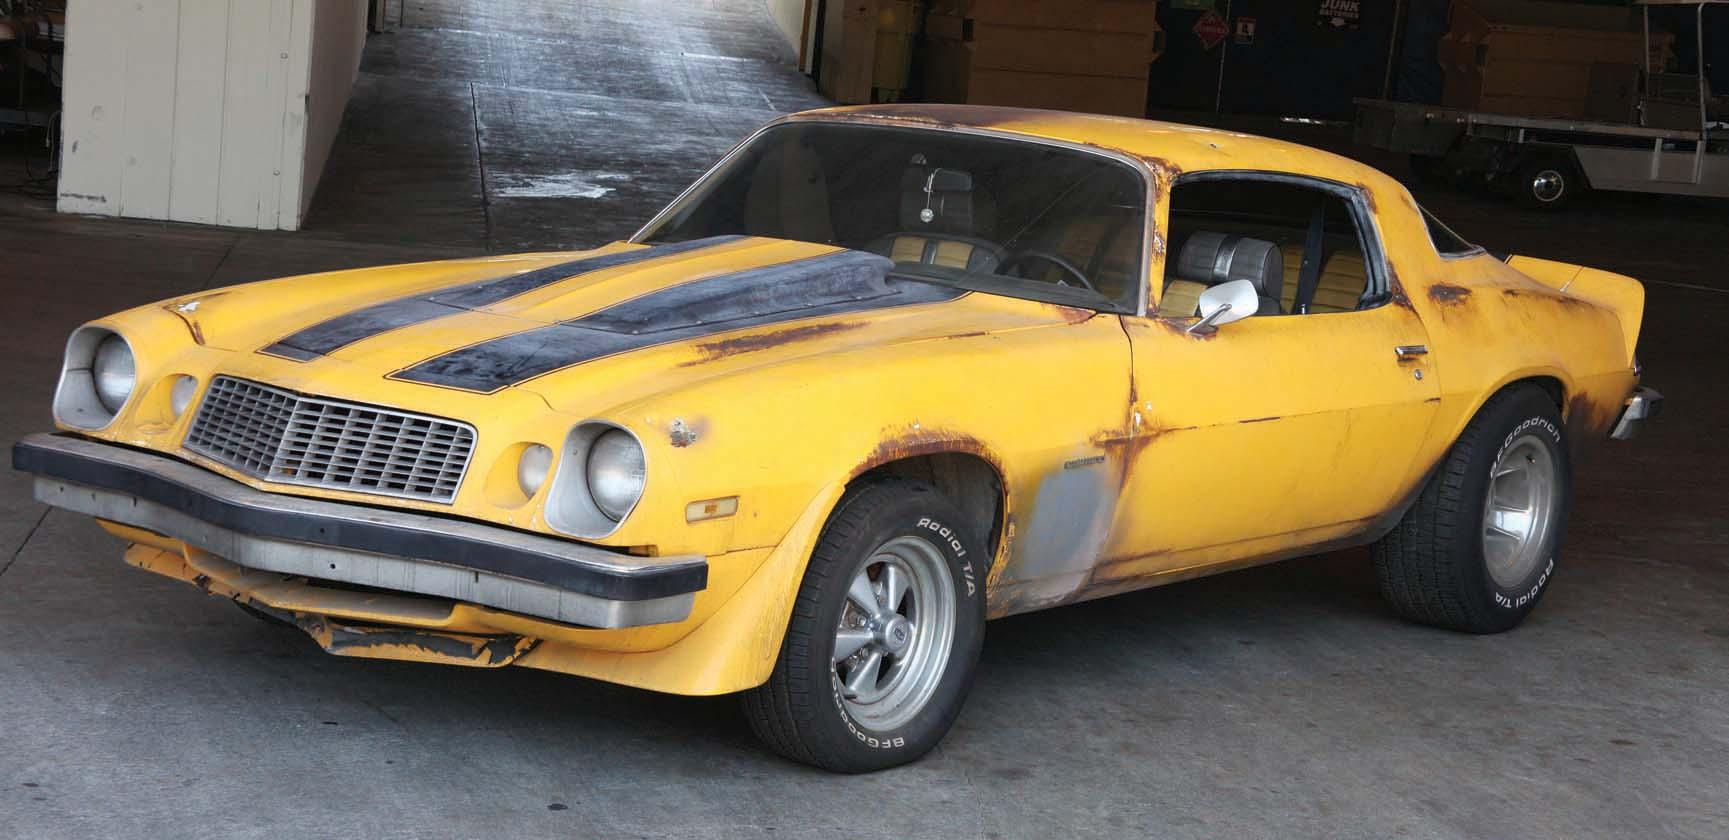 1977 Chevy Camaro Bumblebee Car From Transformers